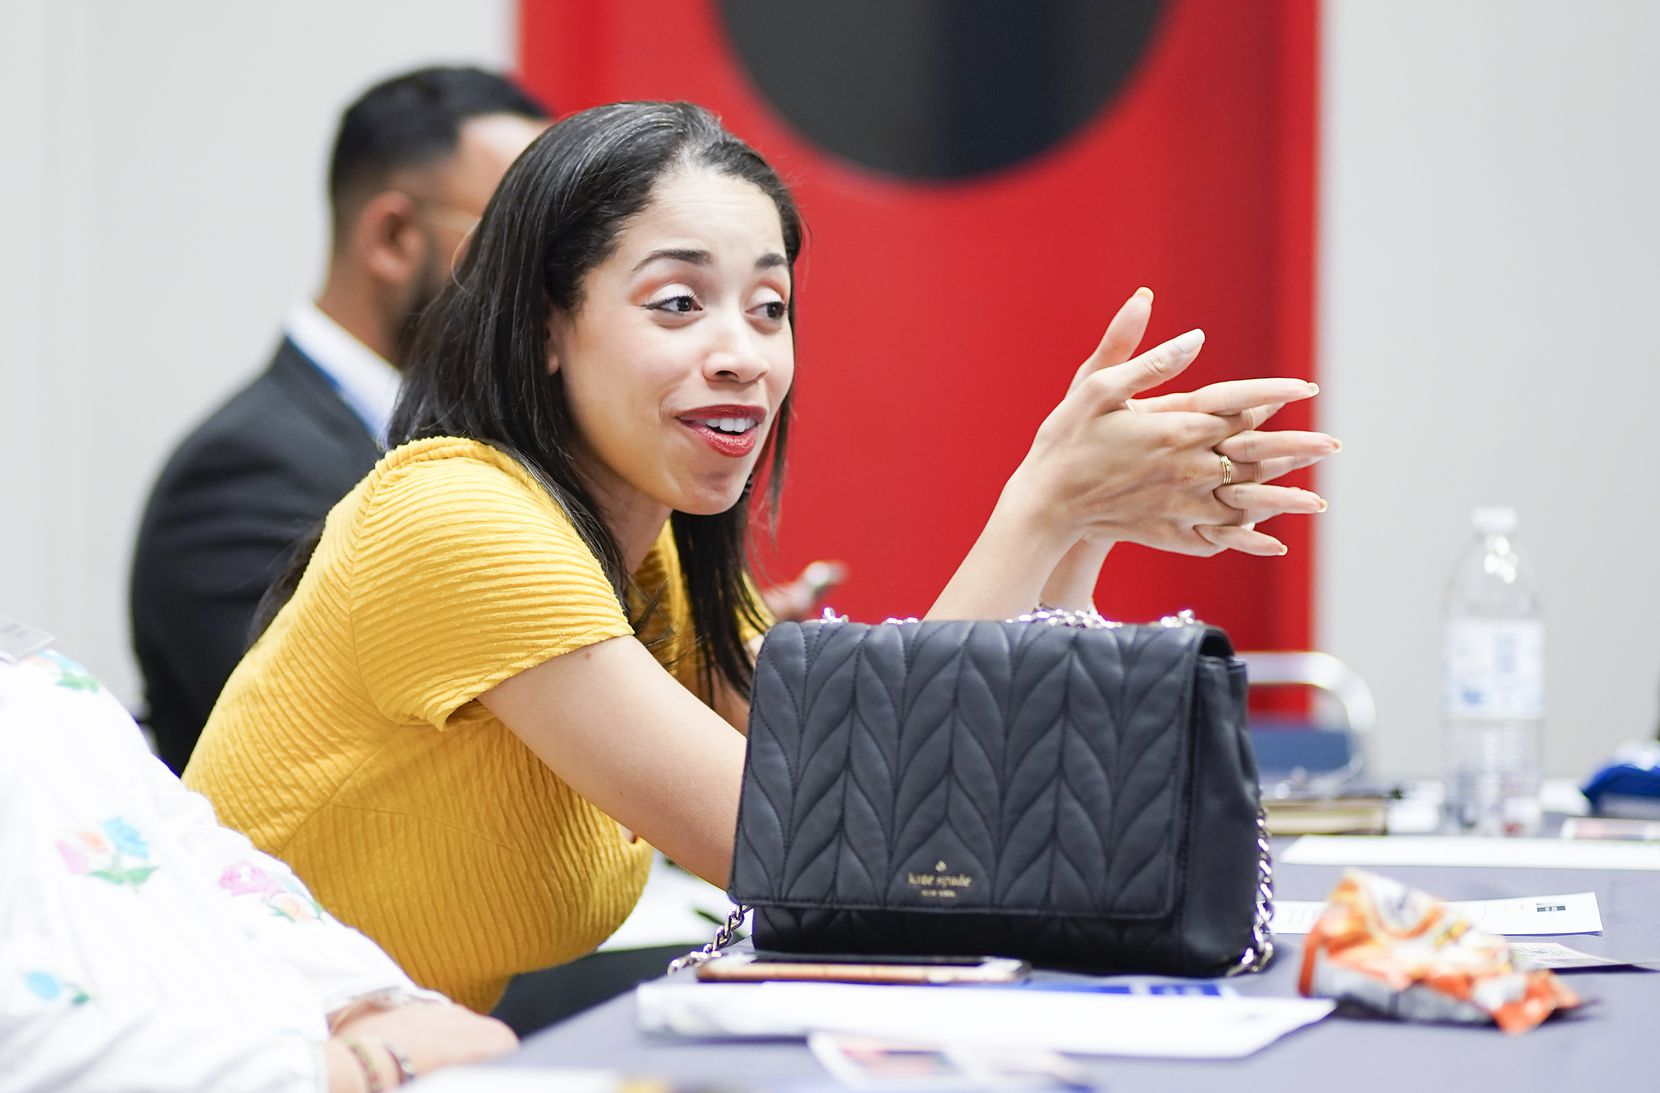 Houston City Council member Amanda Edwards talks during a round table discussion about how Muslims can build civic health and become a more resilient community while challenging radicalized anti-Muslim bigotry on Saturday, Aug. 31, 2019 in Houston. ORG XMIT: MER2546717174f2f89df7a7d160b9364